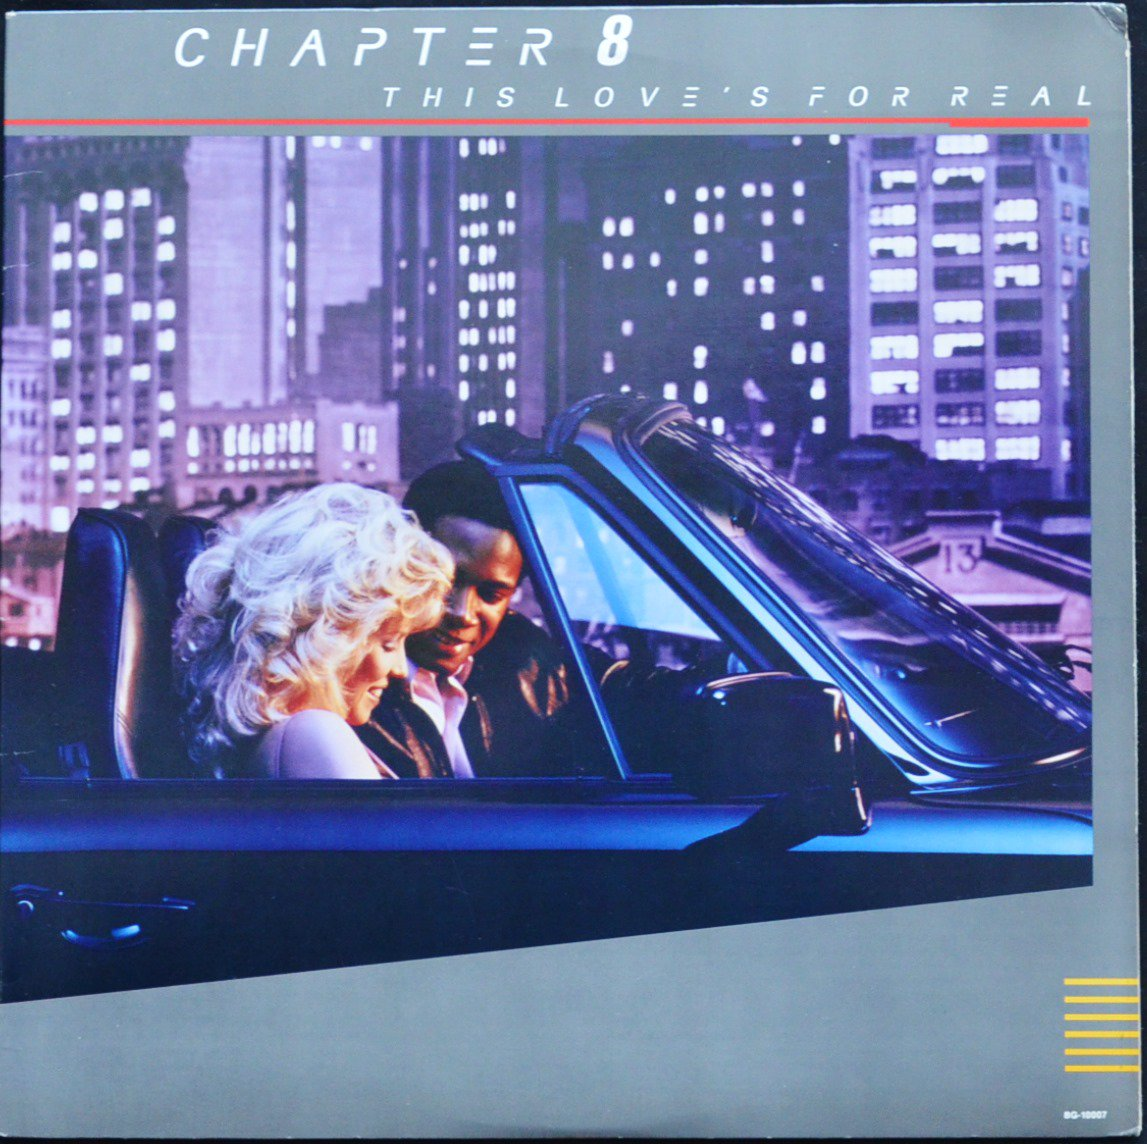 CHAPTER 8 ‎/ THIS LOVE'S FOR REAL (LP)